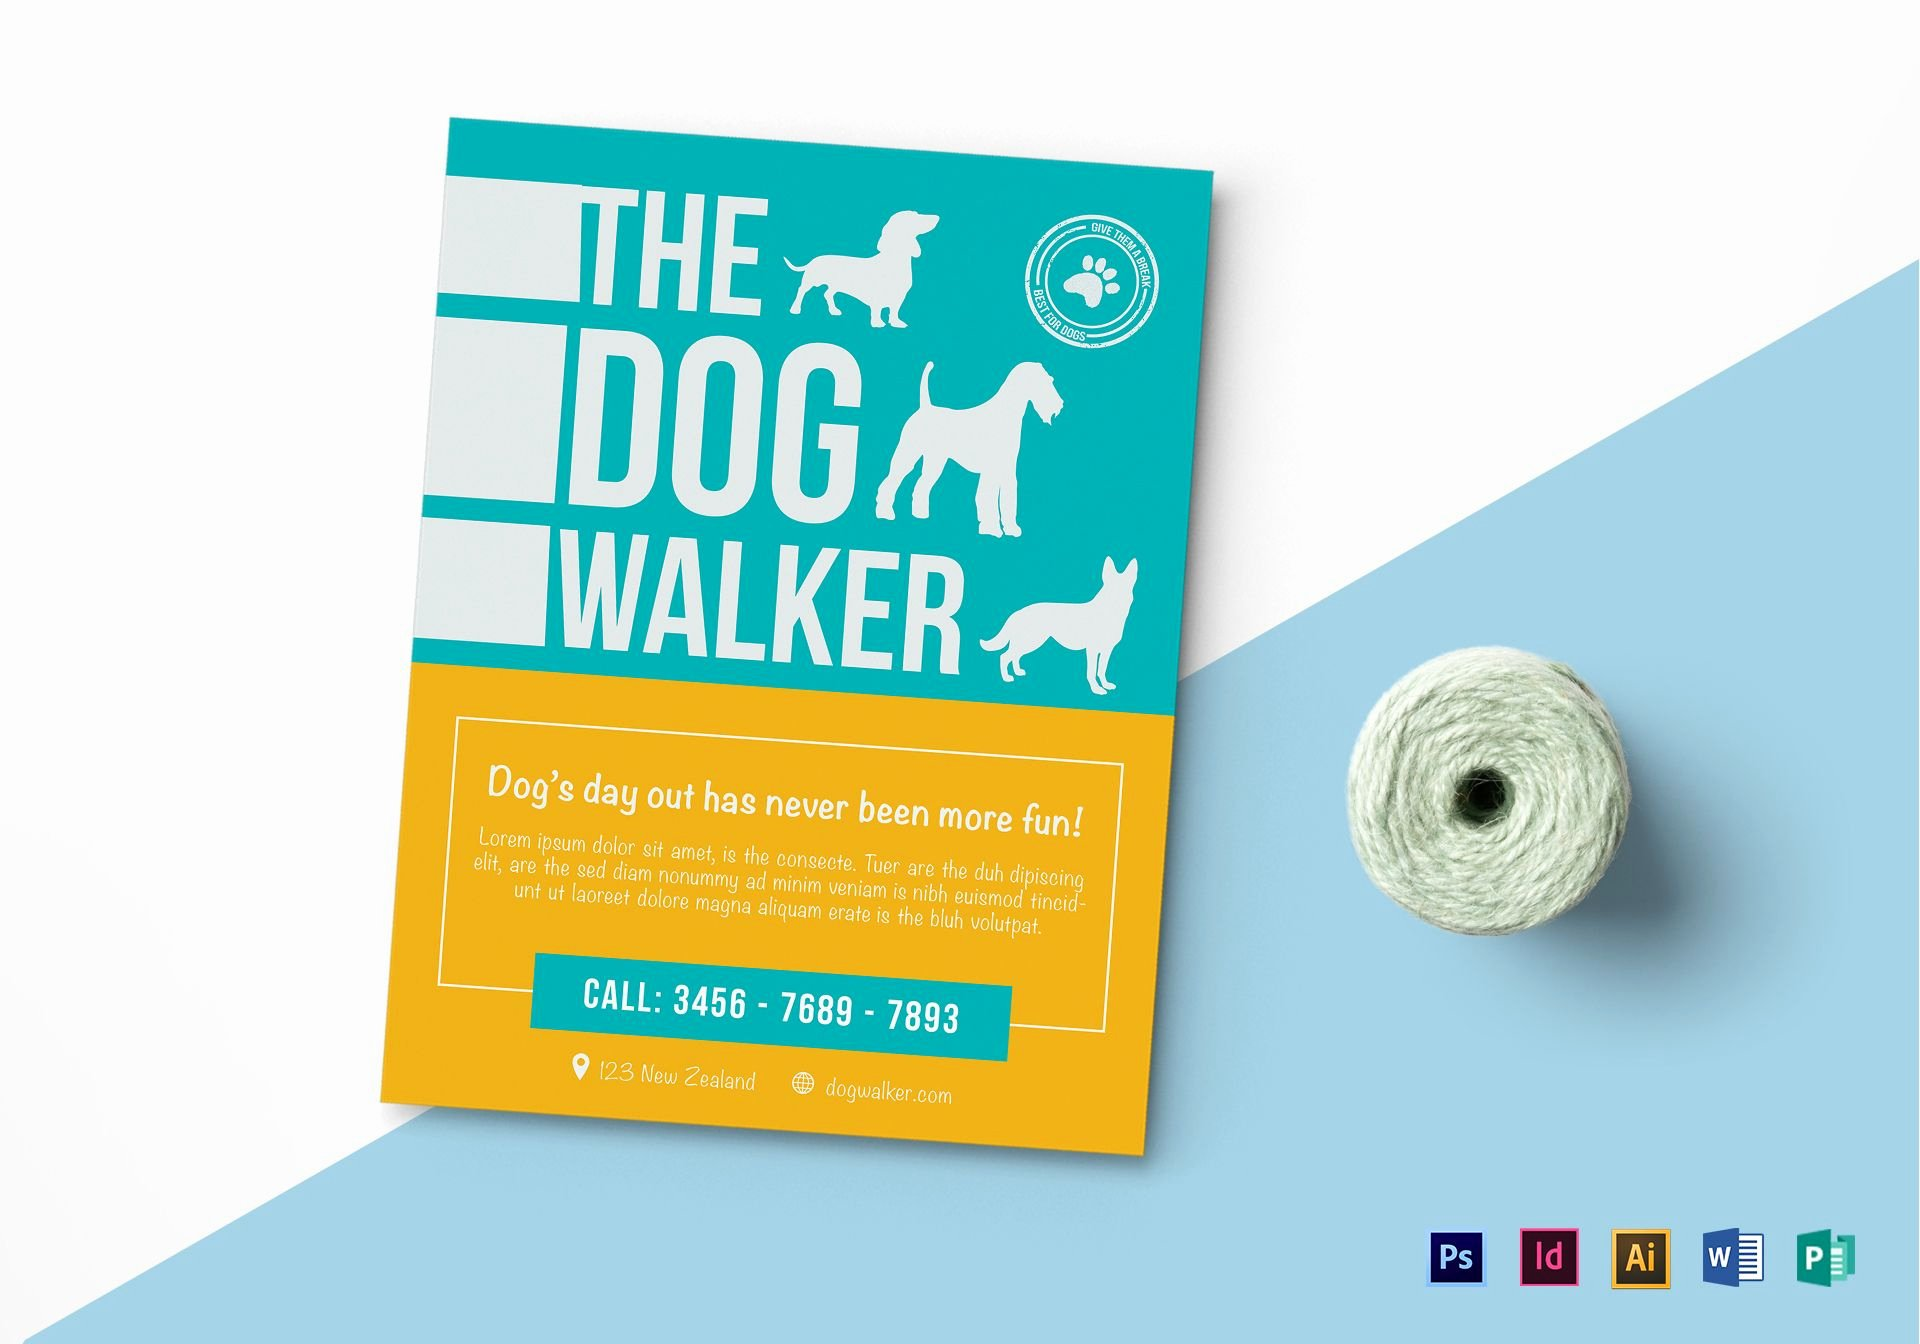 Dog Walking Flyer Template Luxury Dog Walker Flyer Design Template In Psd Word Publisher